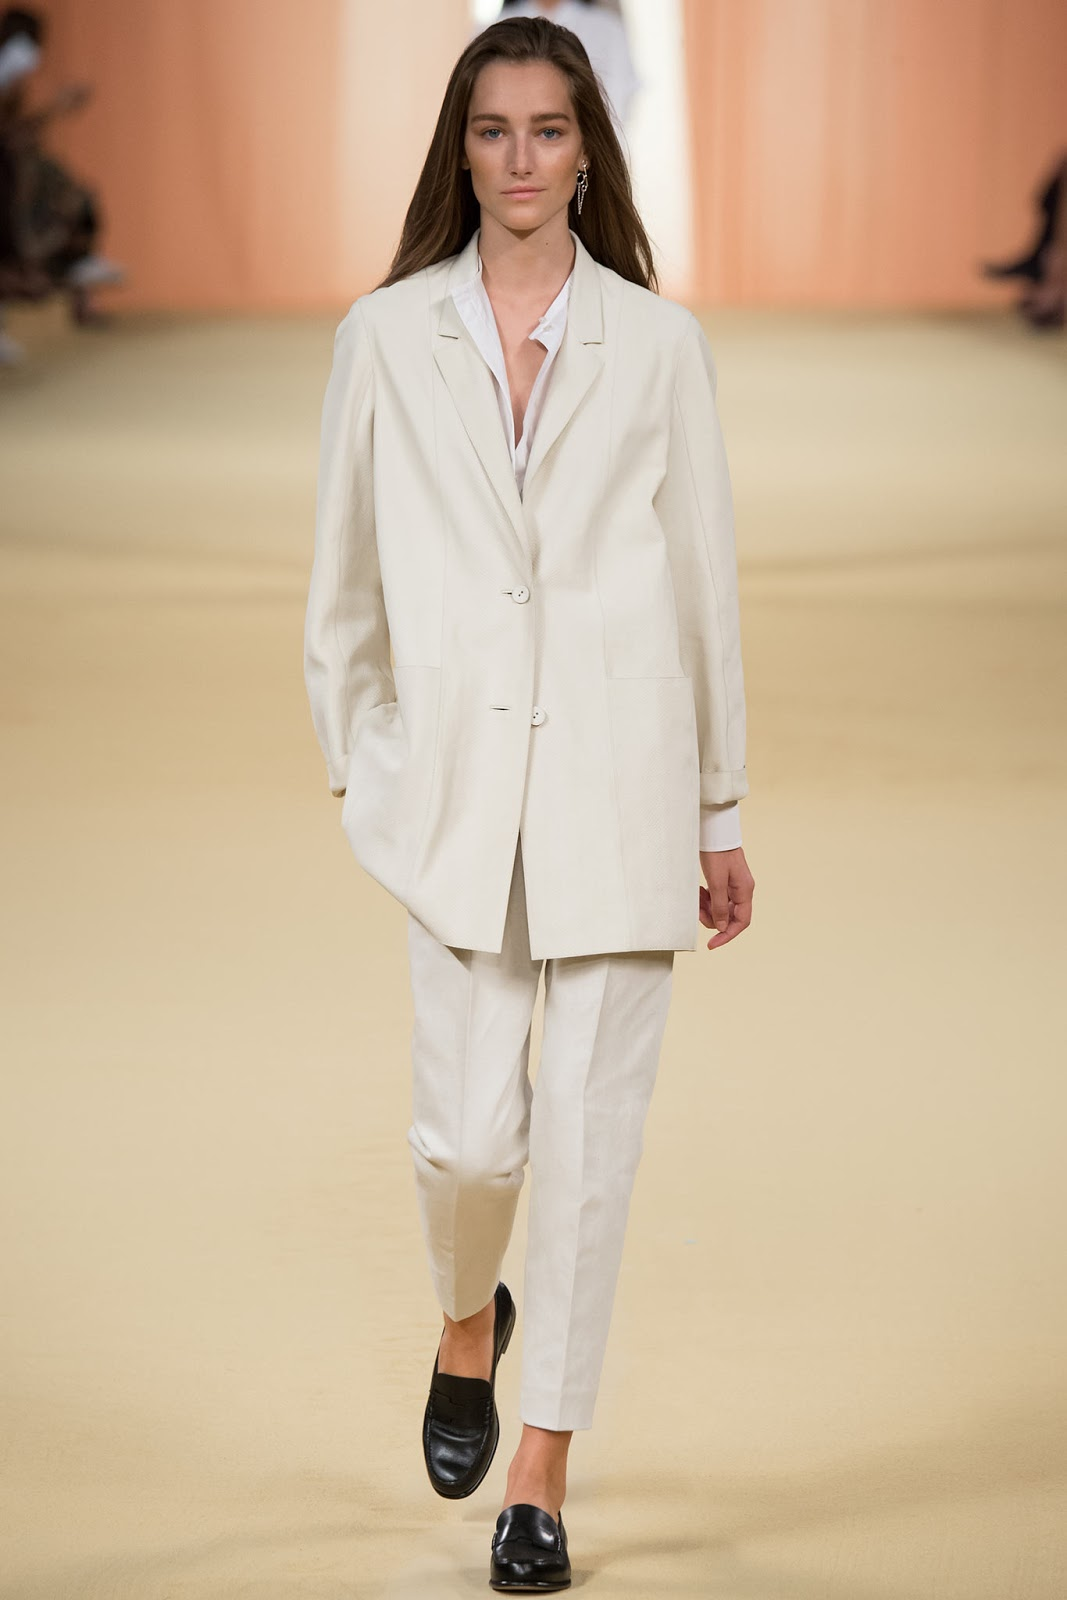 Hermes / Spring/Summer 2015 trends / trouser suit / styling tips and outfit inspiration / via fashioned by love british fashion blog